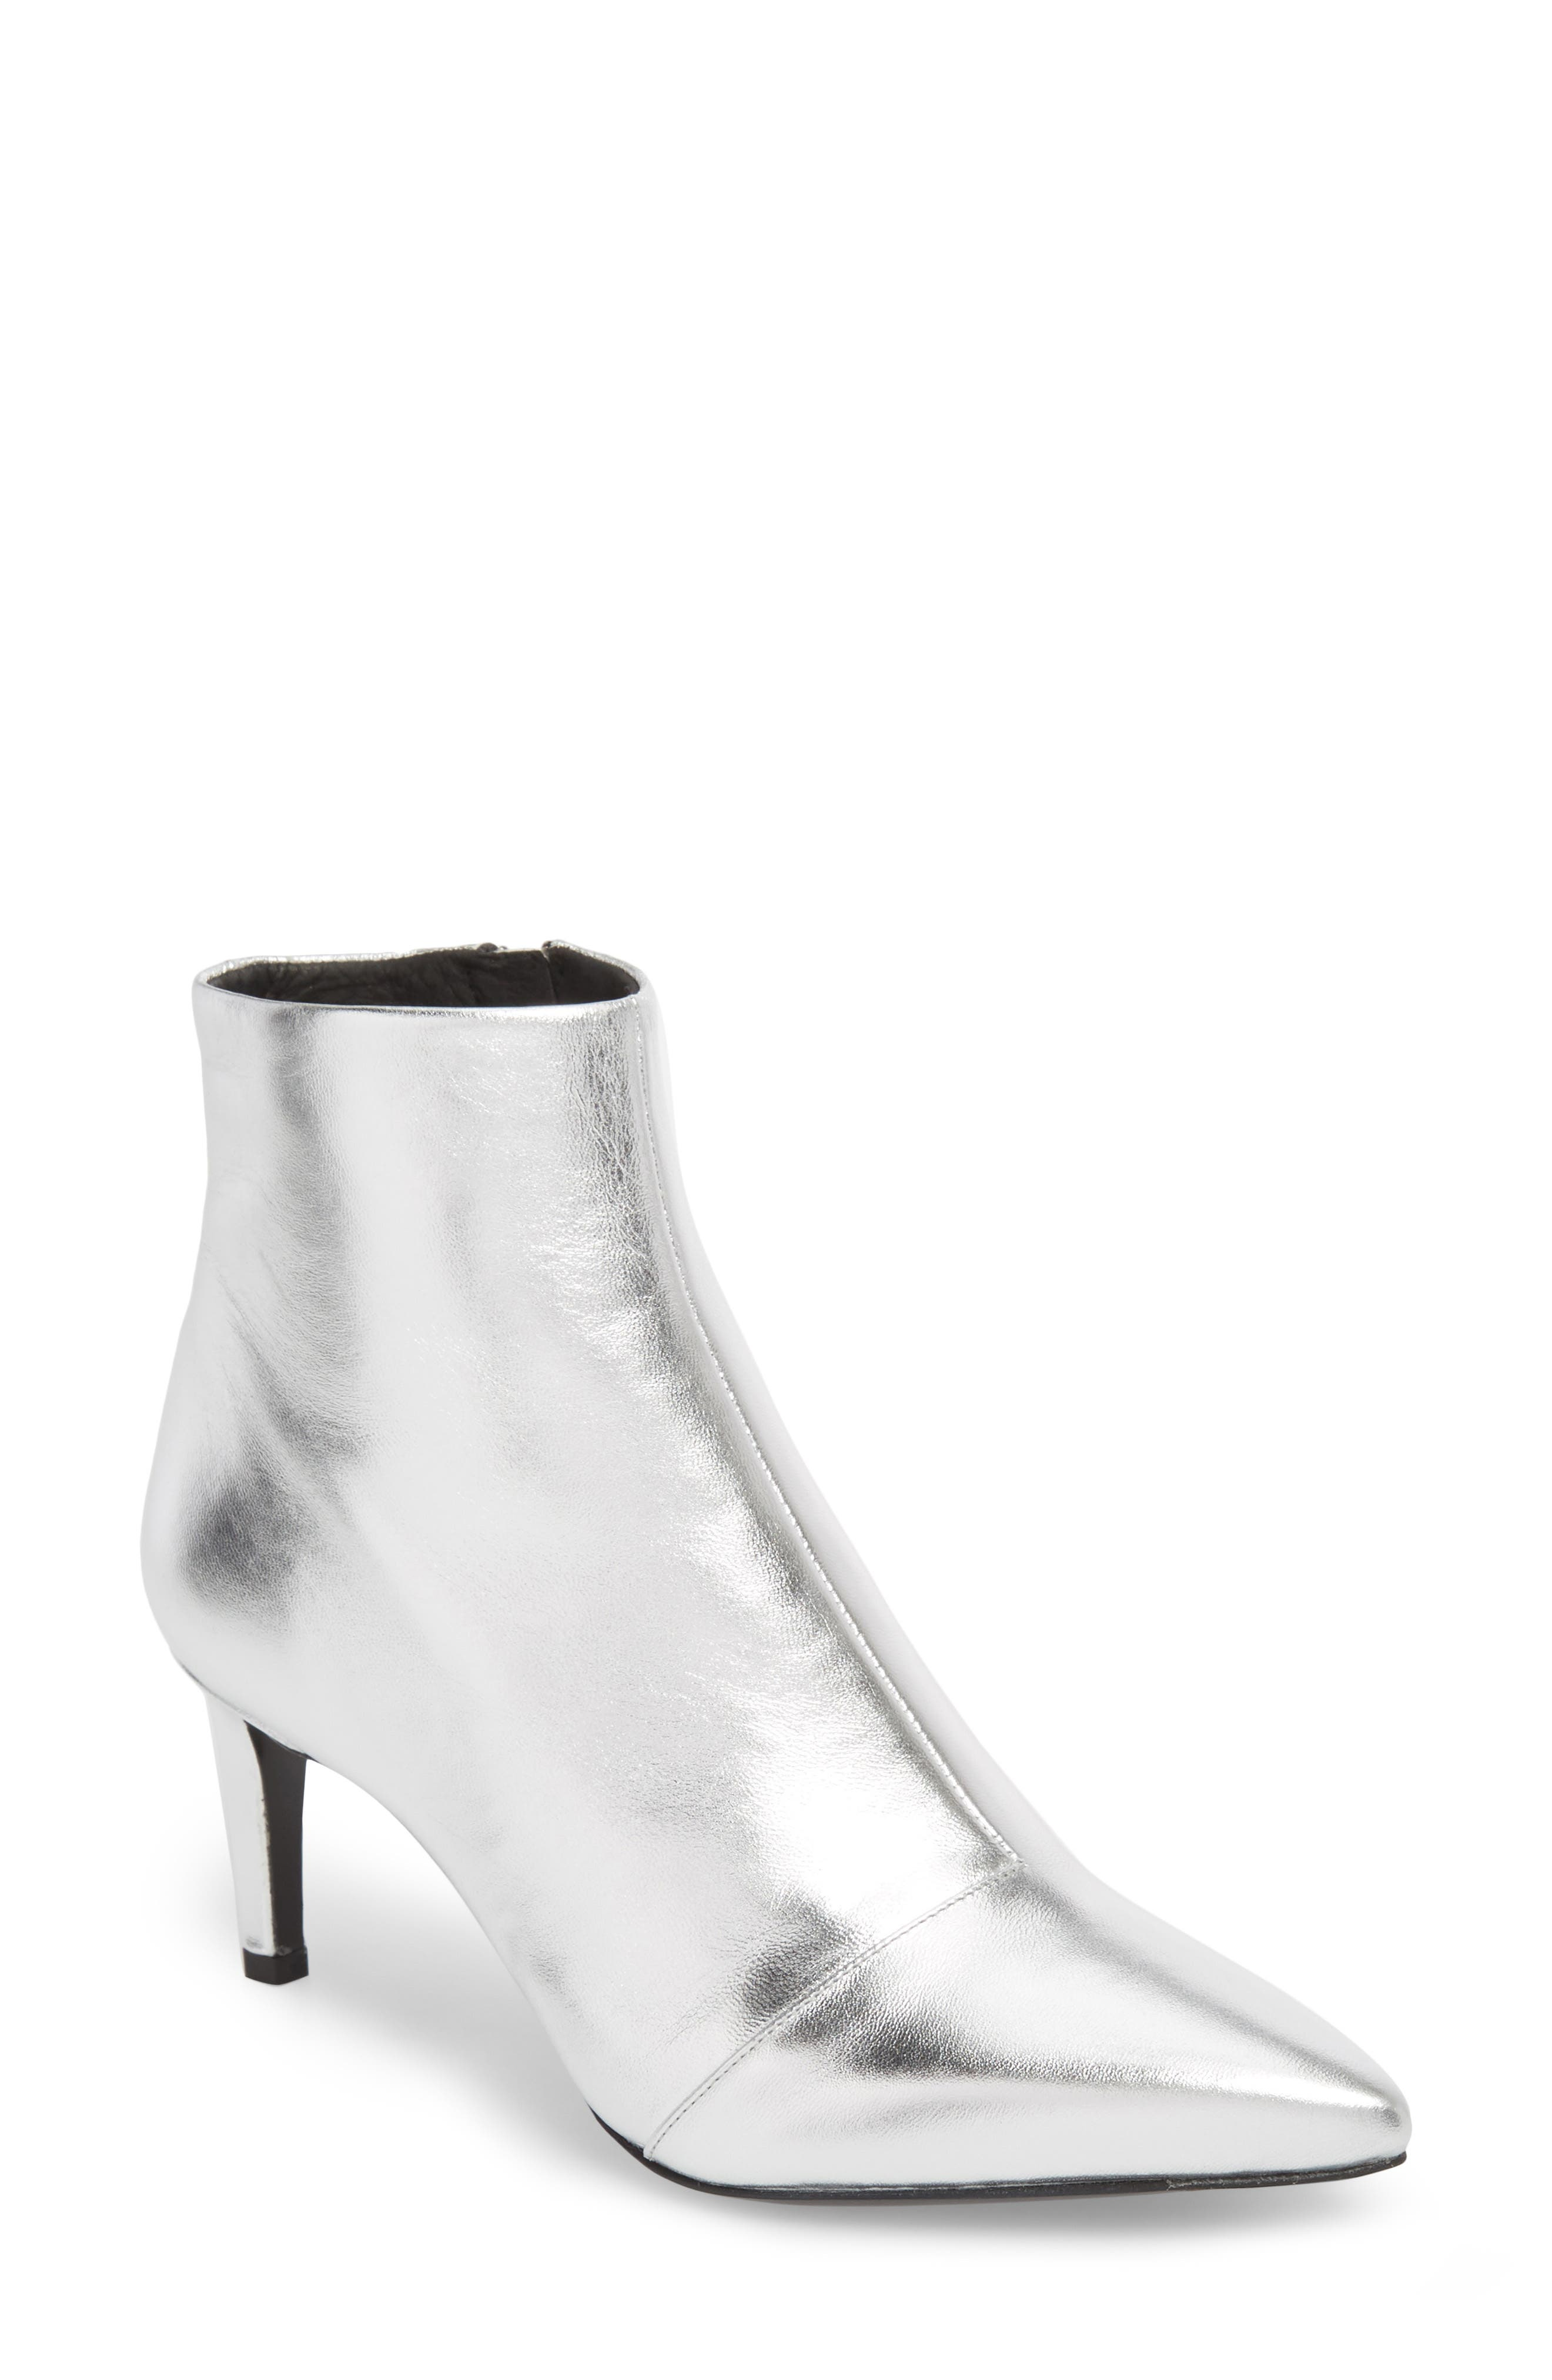 Beha Pointy Toe Bootie,                         Main,                         color, Silver